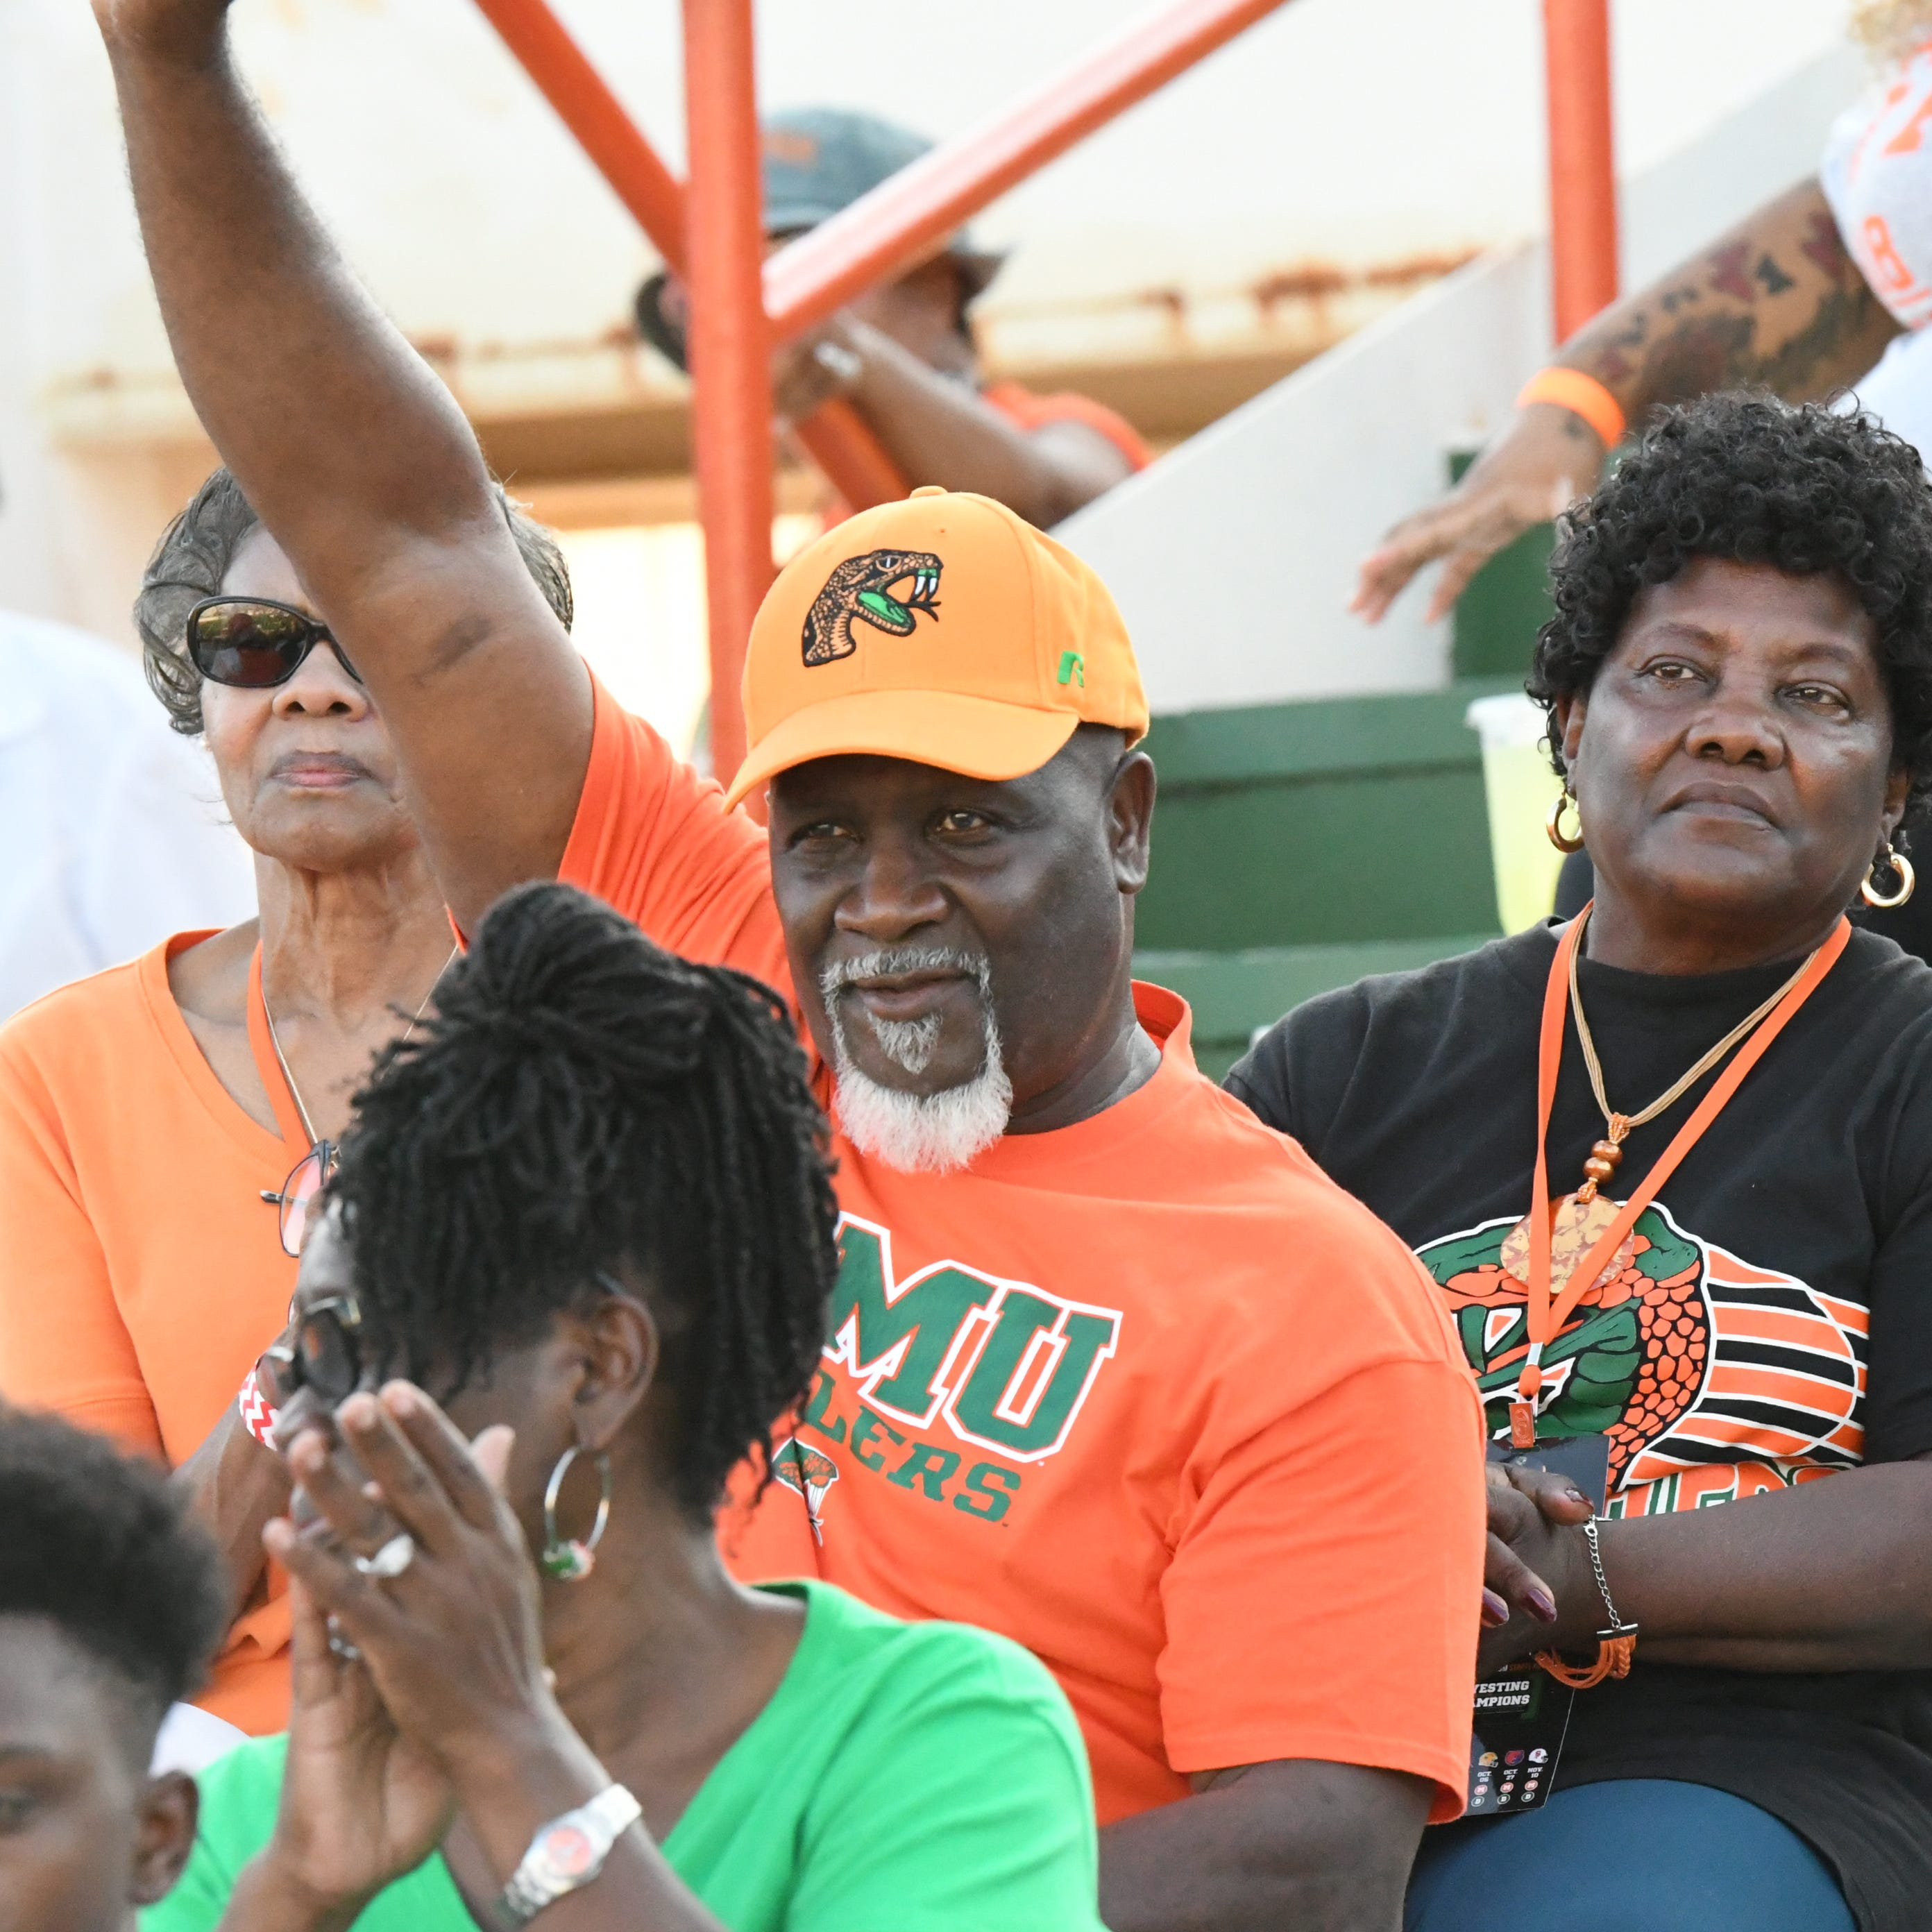 FAMU ranks third in home attendance in FCS